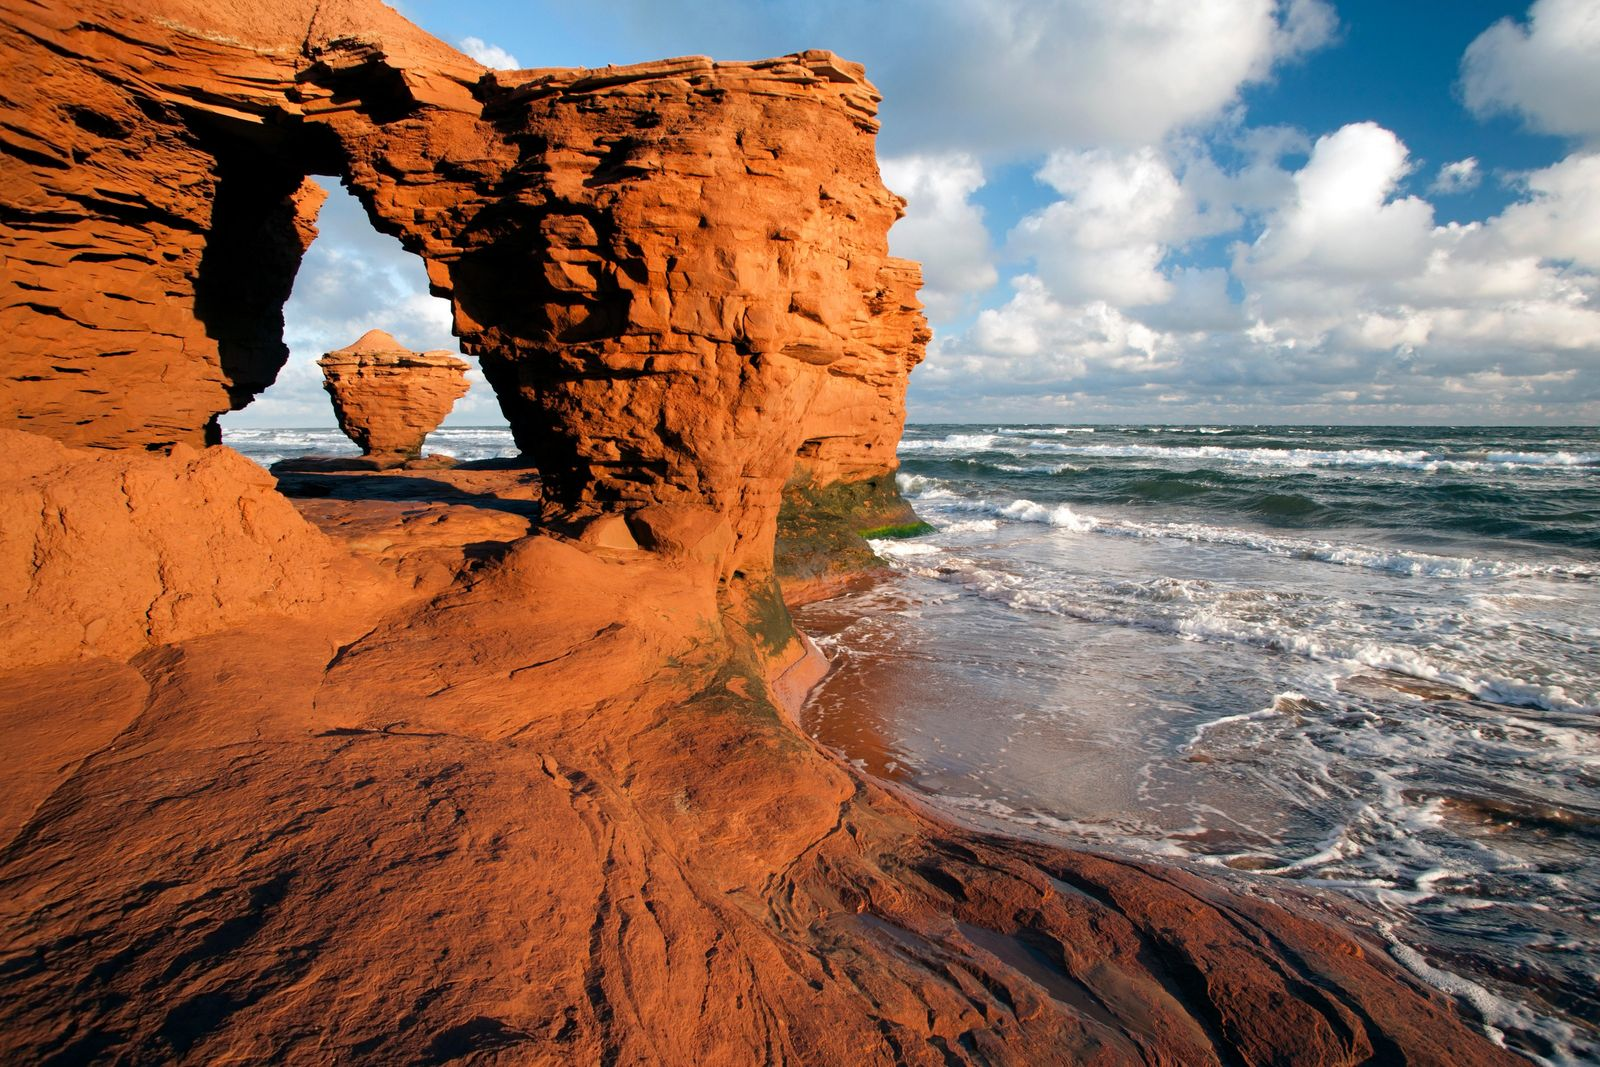 The island's north-central coast near Darnley is famous for its stunning, wind-and-sea sculpted sandstone cliffs and ...